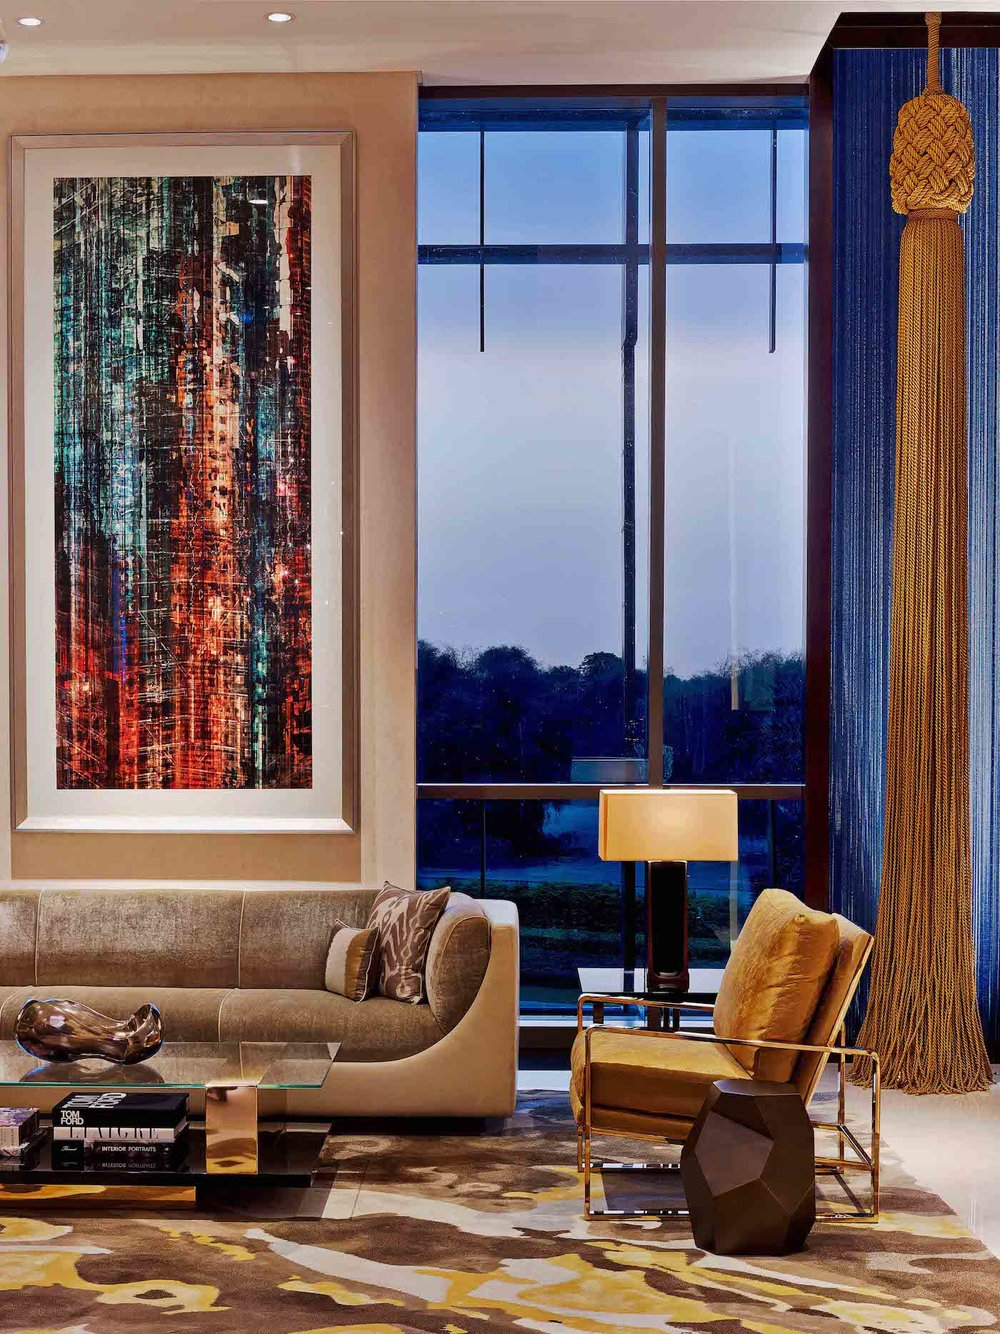 Four-Seasons-DIFC-Dubai-Woven-Metal-Glass-Lamination-Wall-Covering-Hanging-Panels-Sophie-Mallebranche-Paris